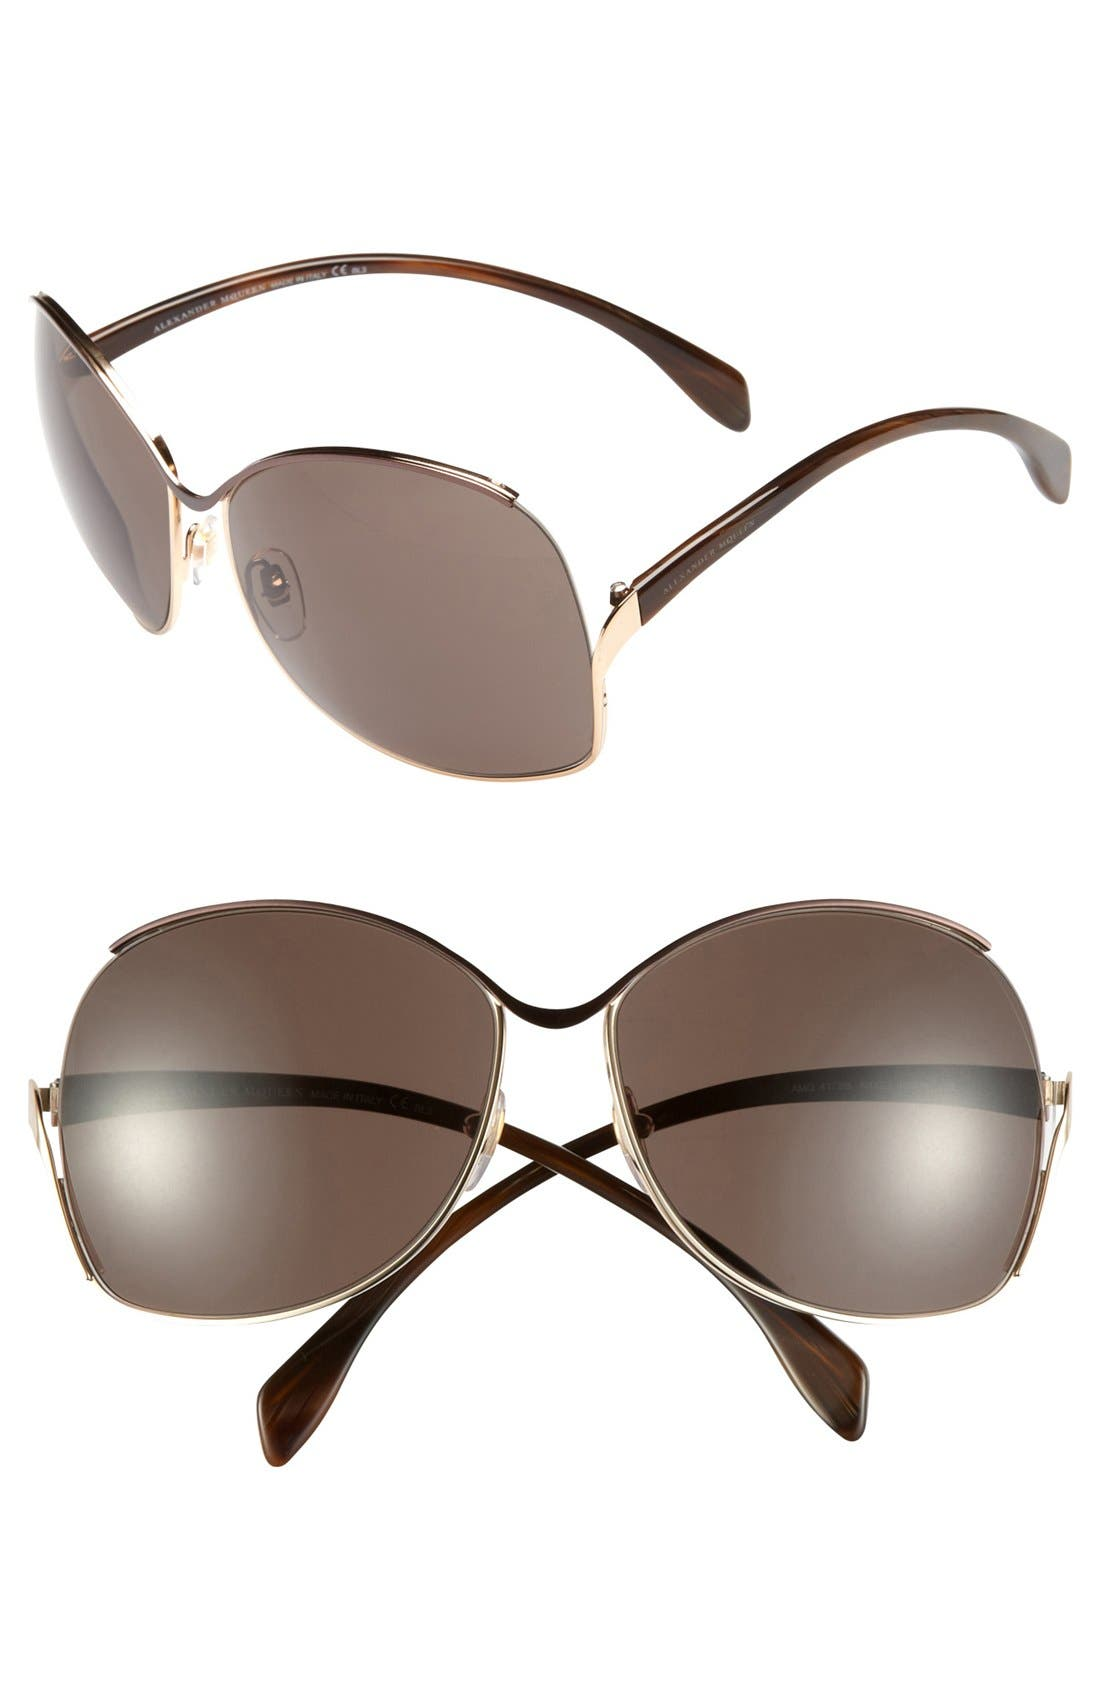 Main Image - Alexander McQueen Retro Metal Sunglasses